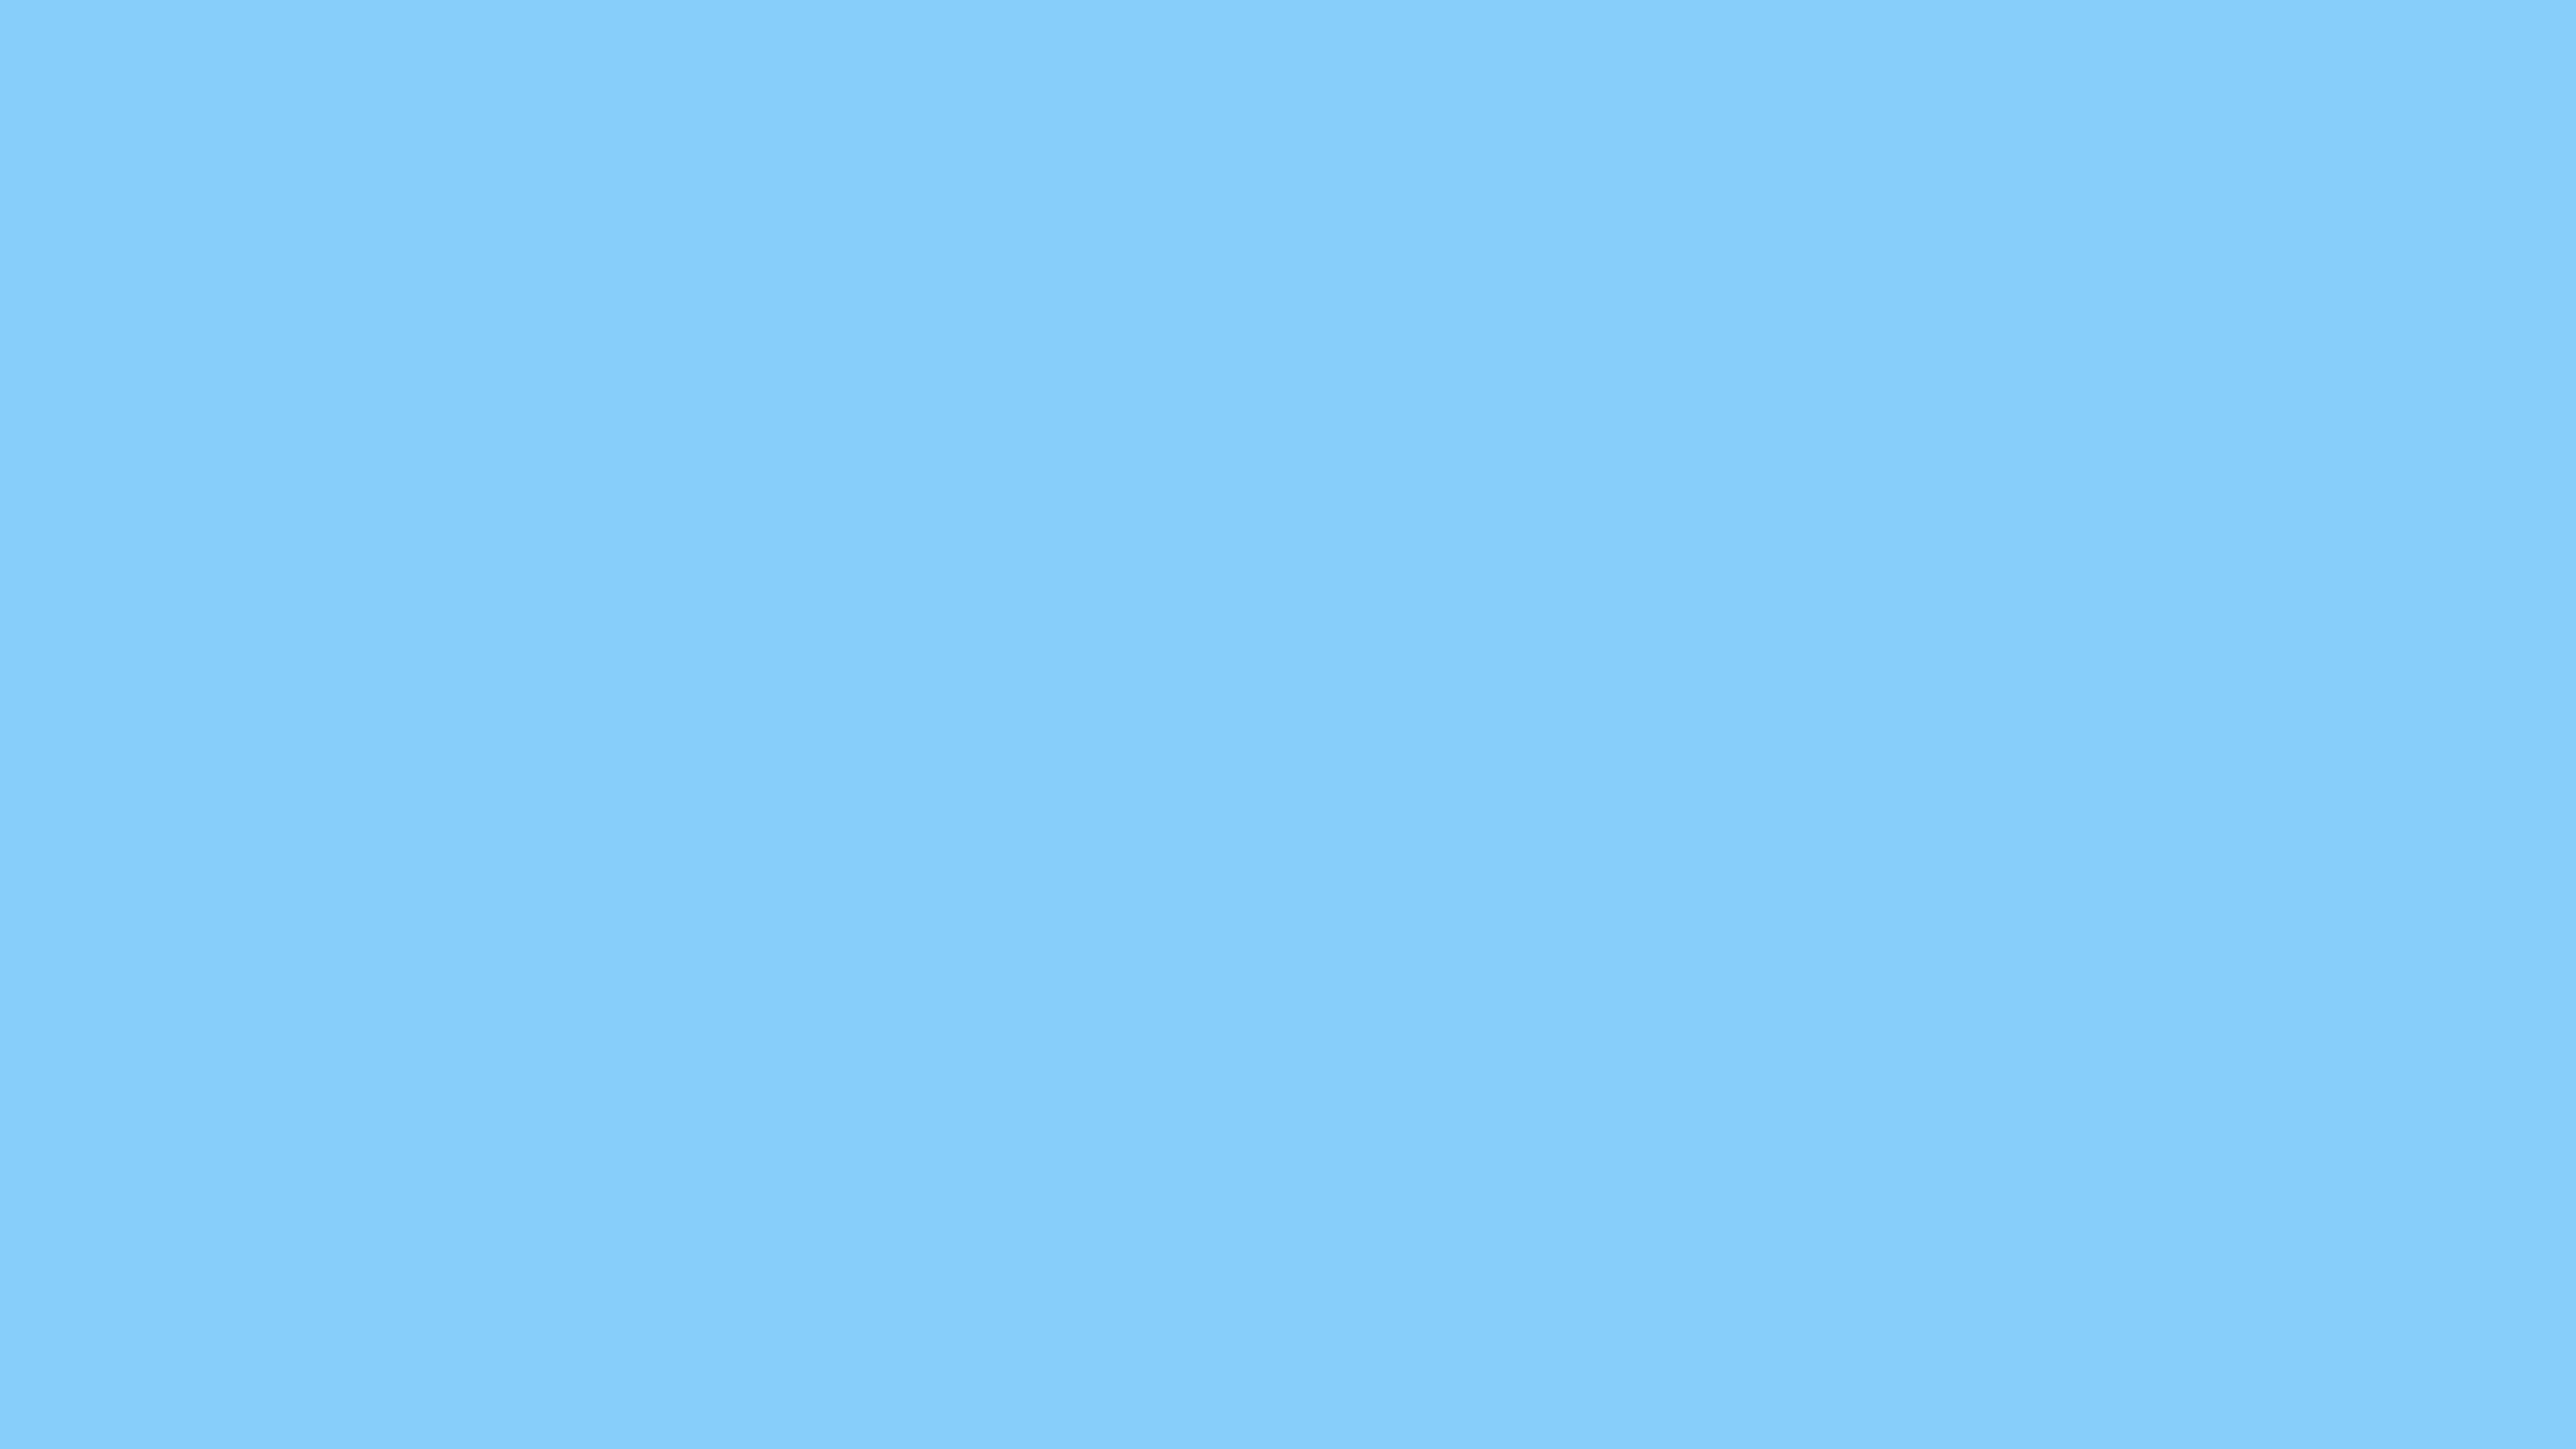 3840x2160 Light Sky Blue Solid Color Background